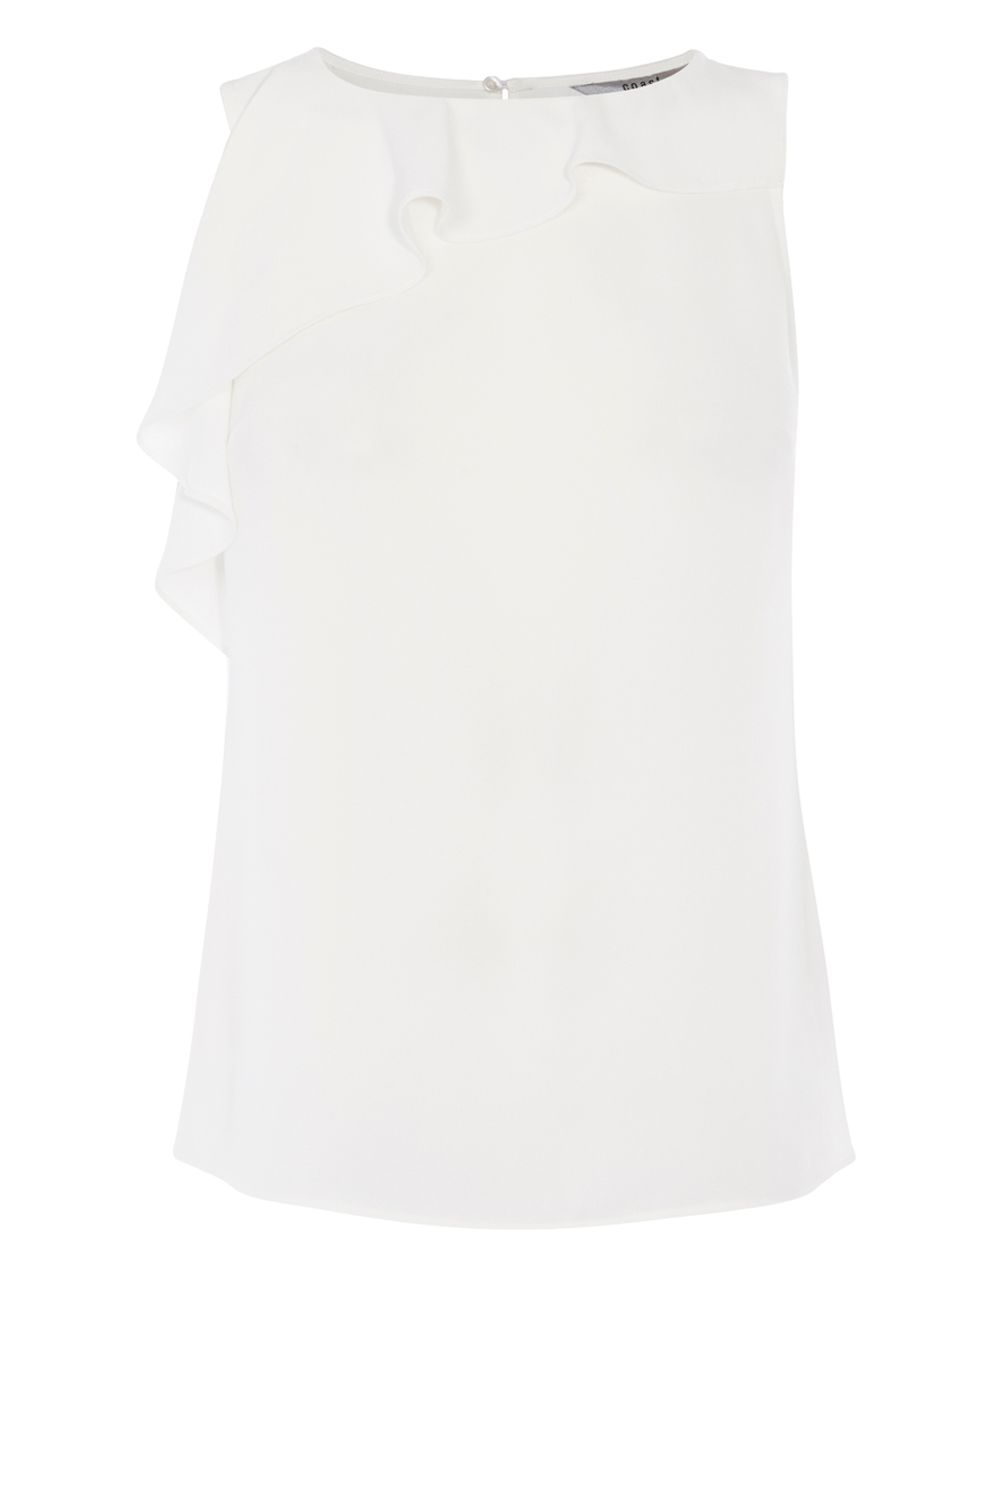 Coast Perlina Shell Top, White